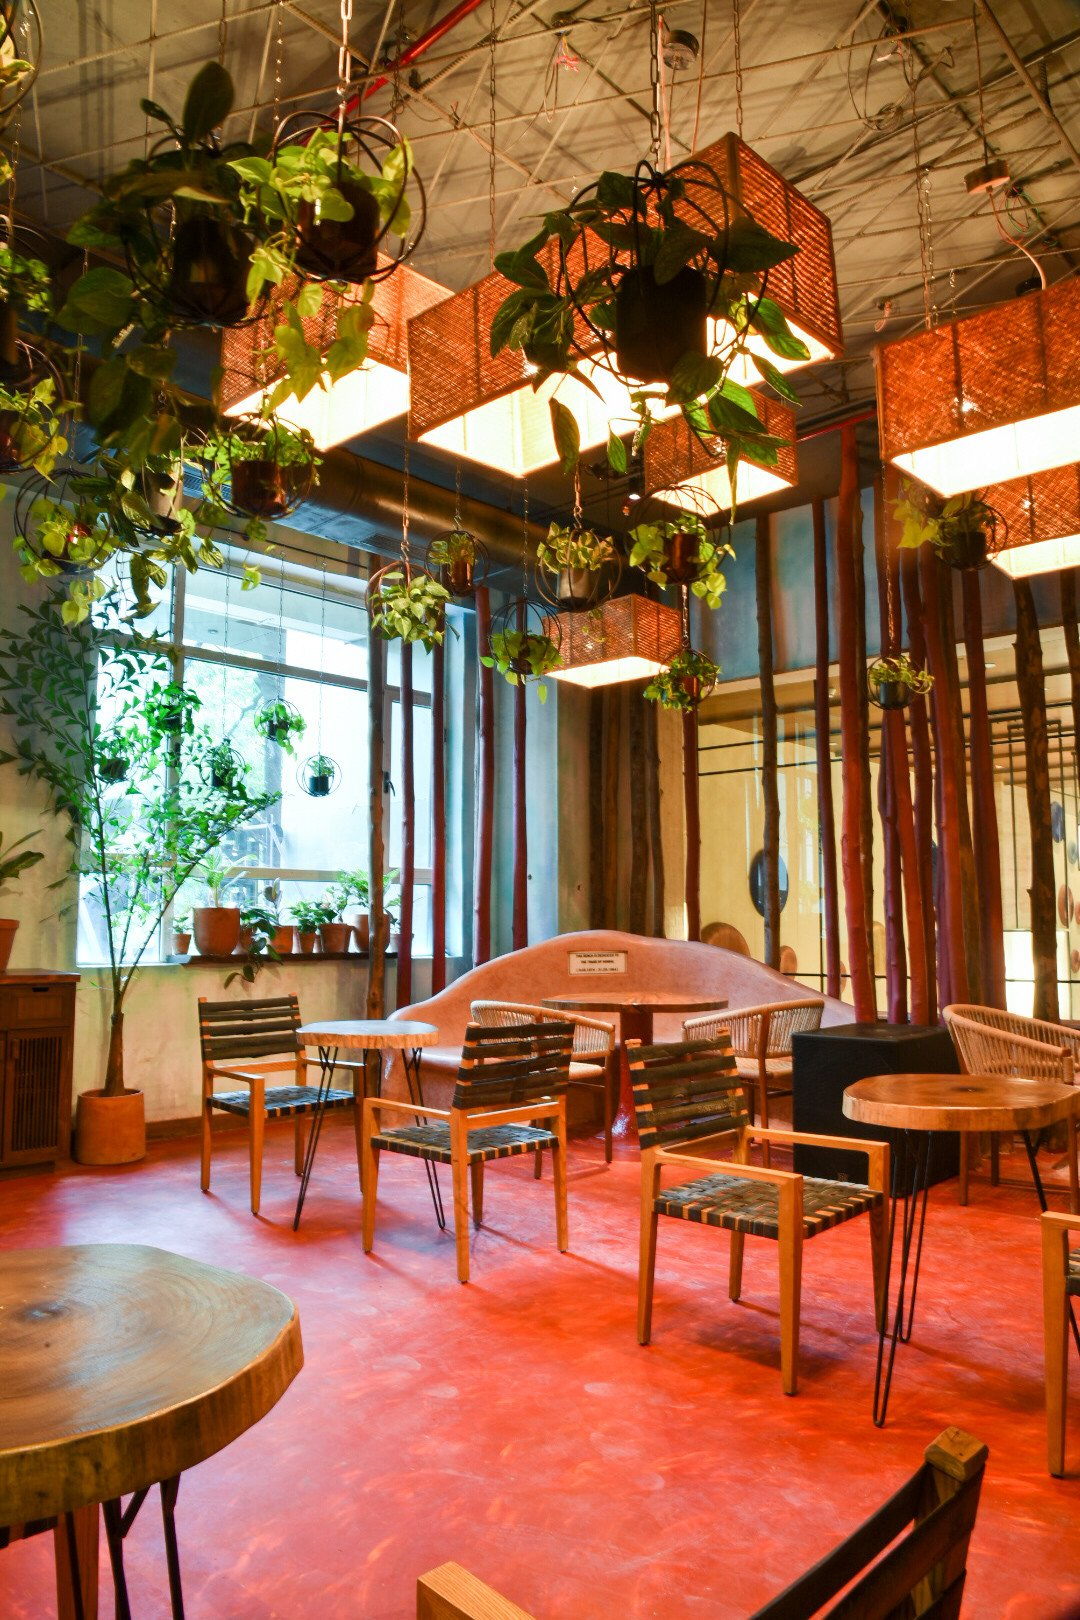 'Powai Social' pays tribute to Mumbai with its unique interiors